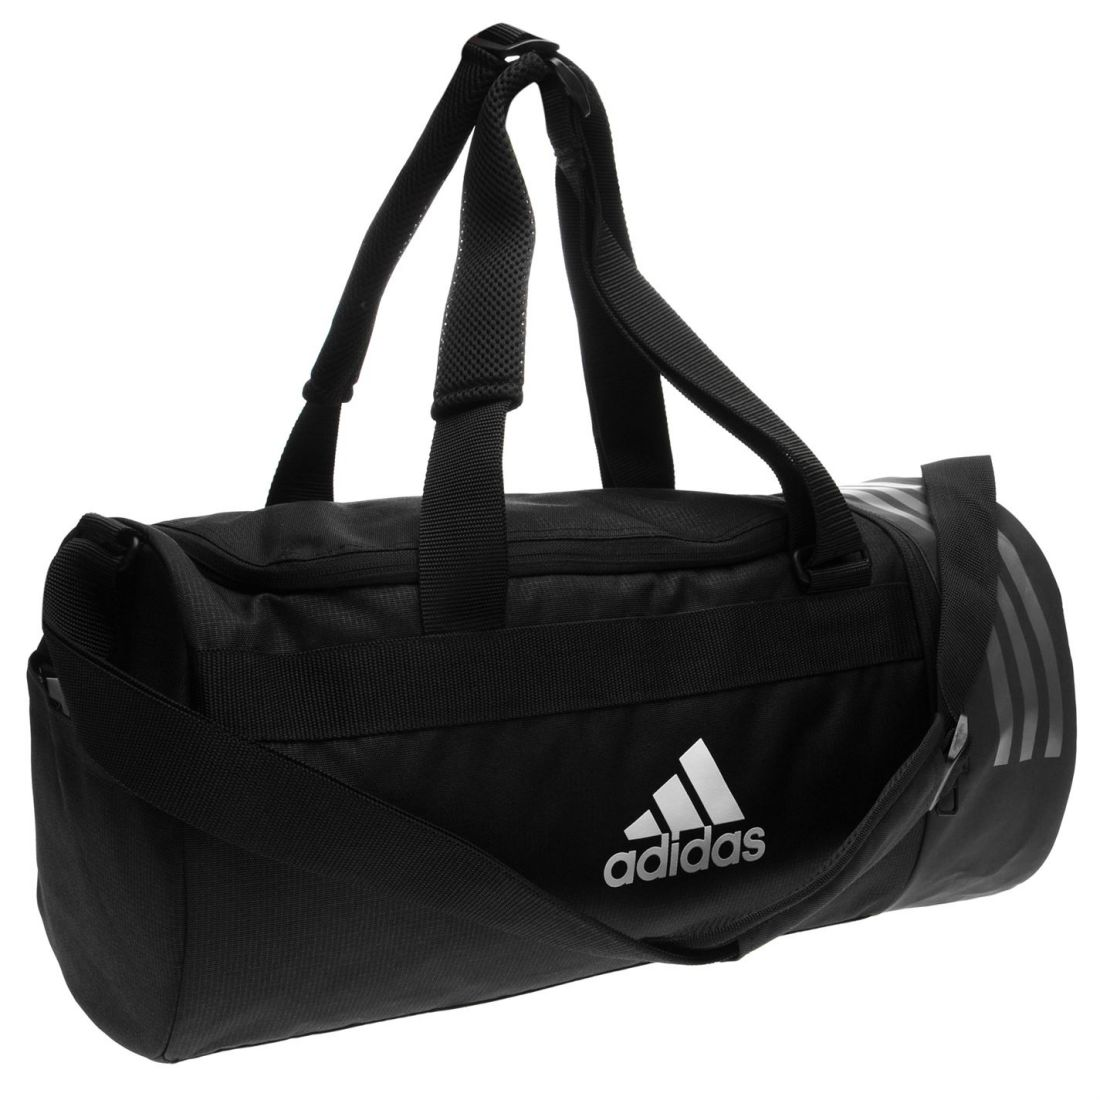 67ad8461bedf adidas Convertible 3s Duffel Bag S CG1532 Black for sale online